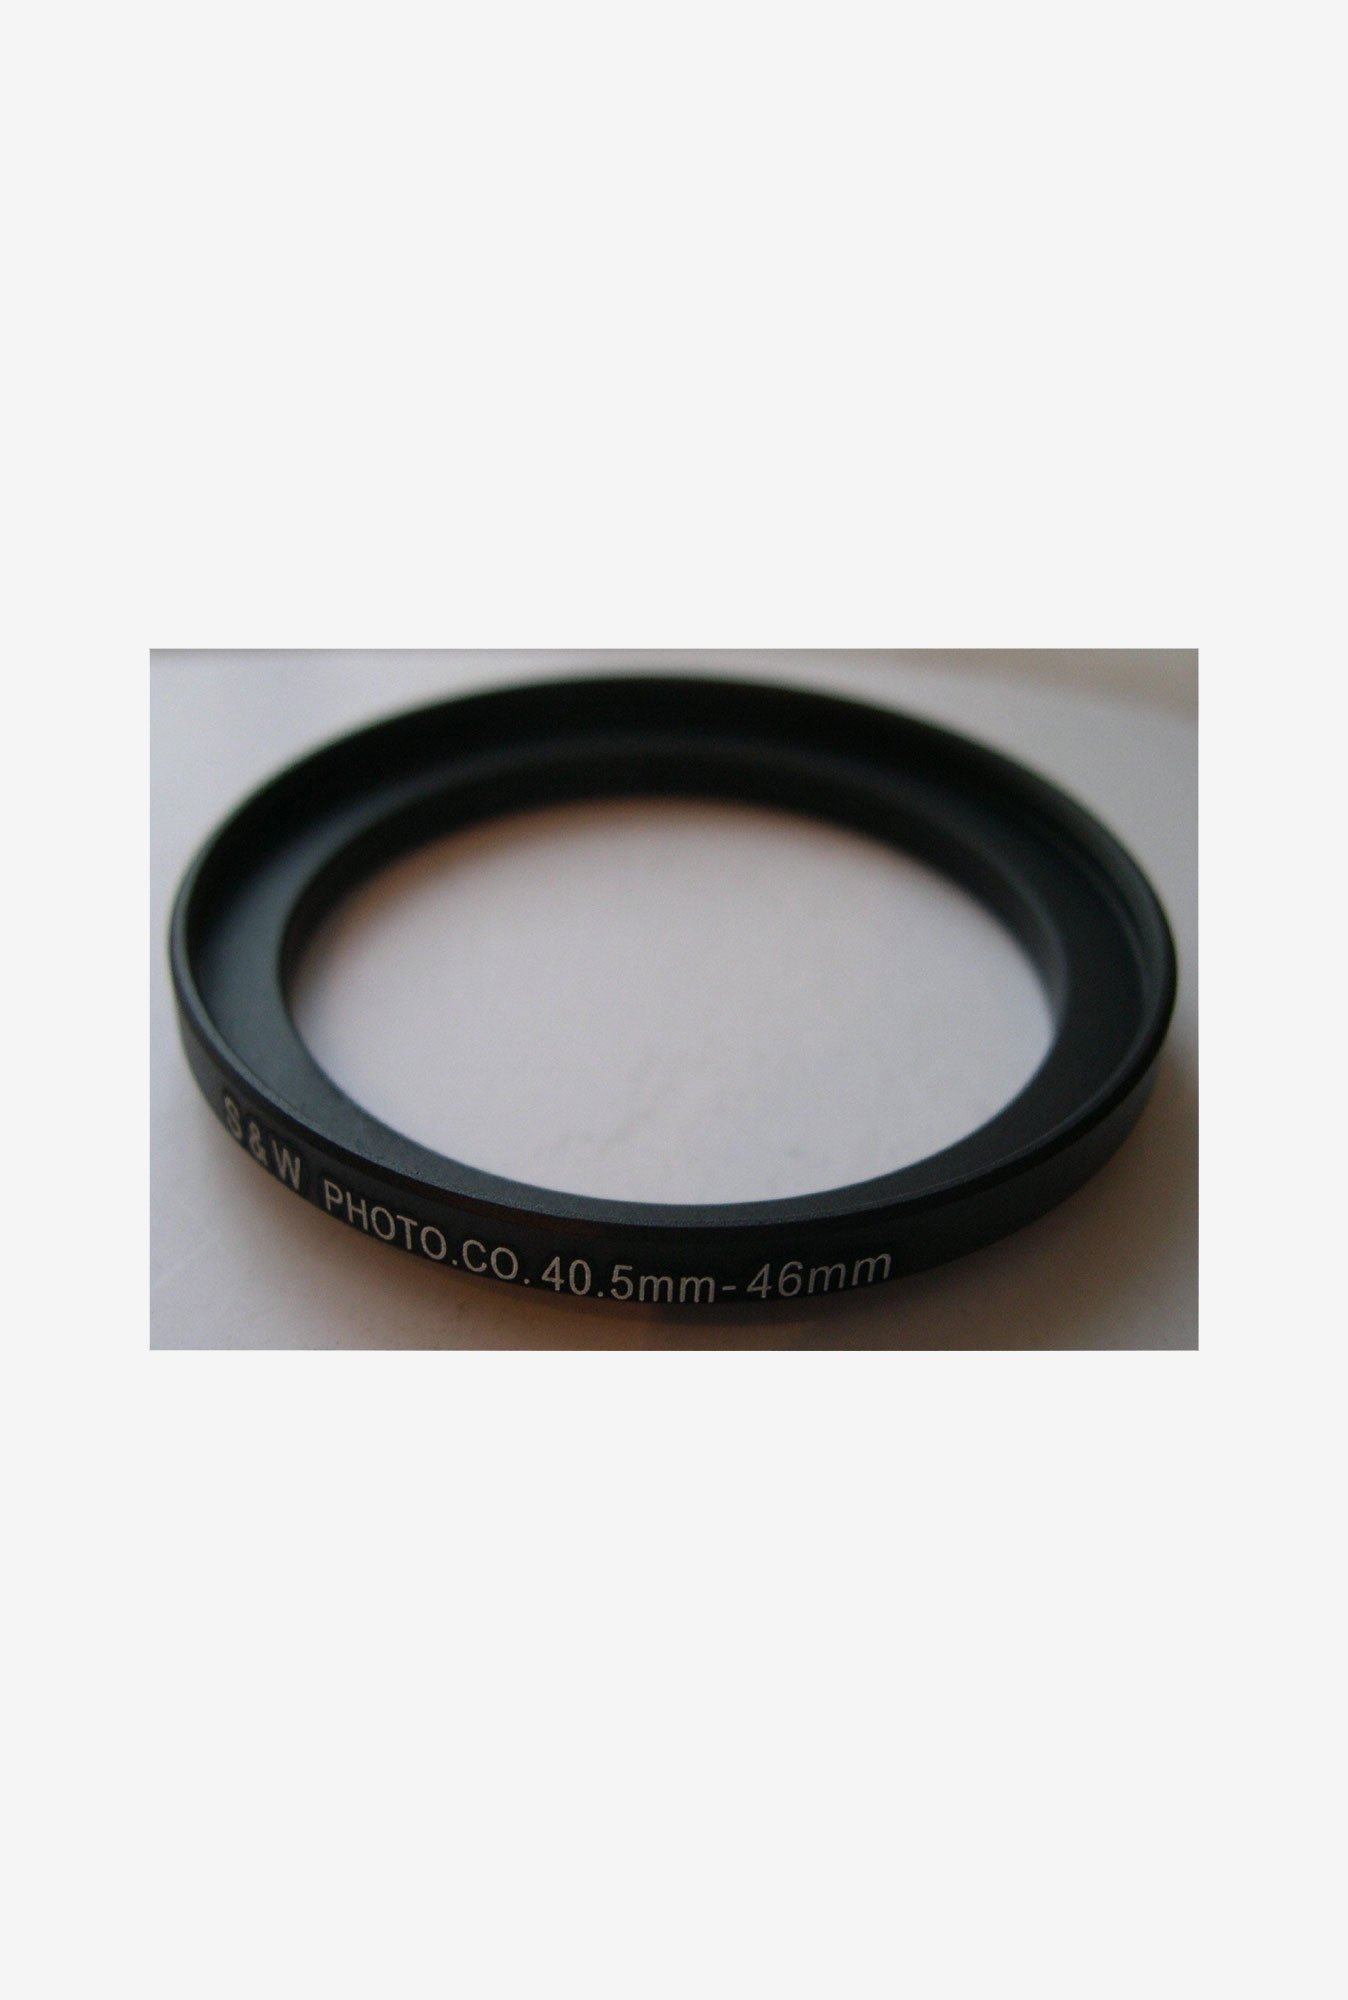 HeavyStar Dedicated Step-Up Ring 40.5mm to 46mm (Black)